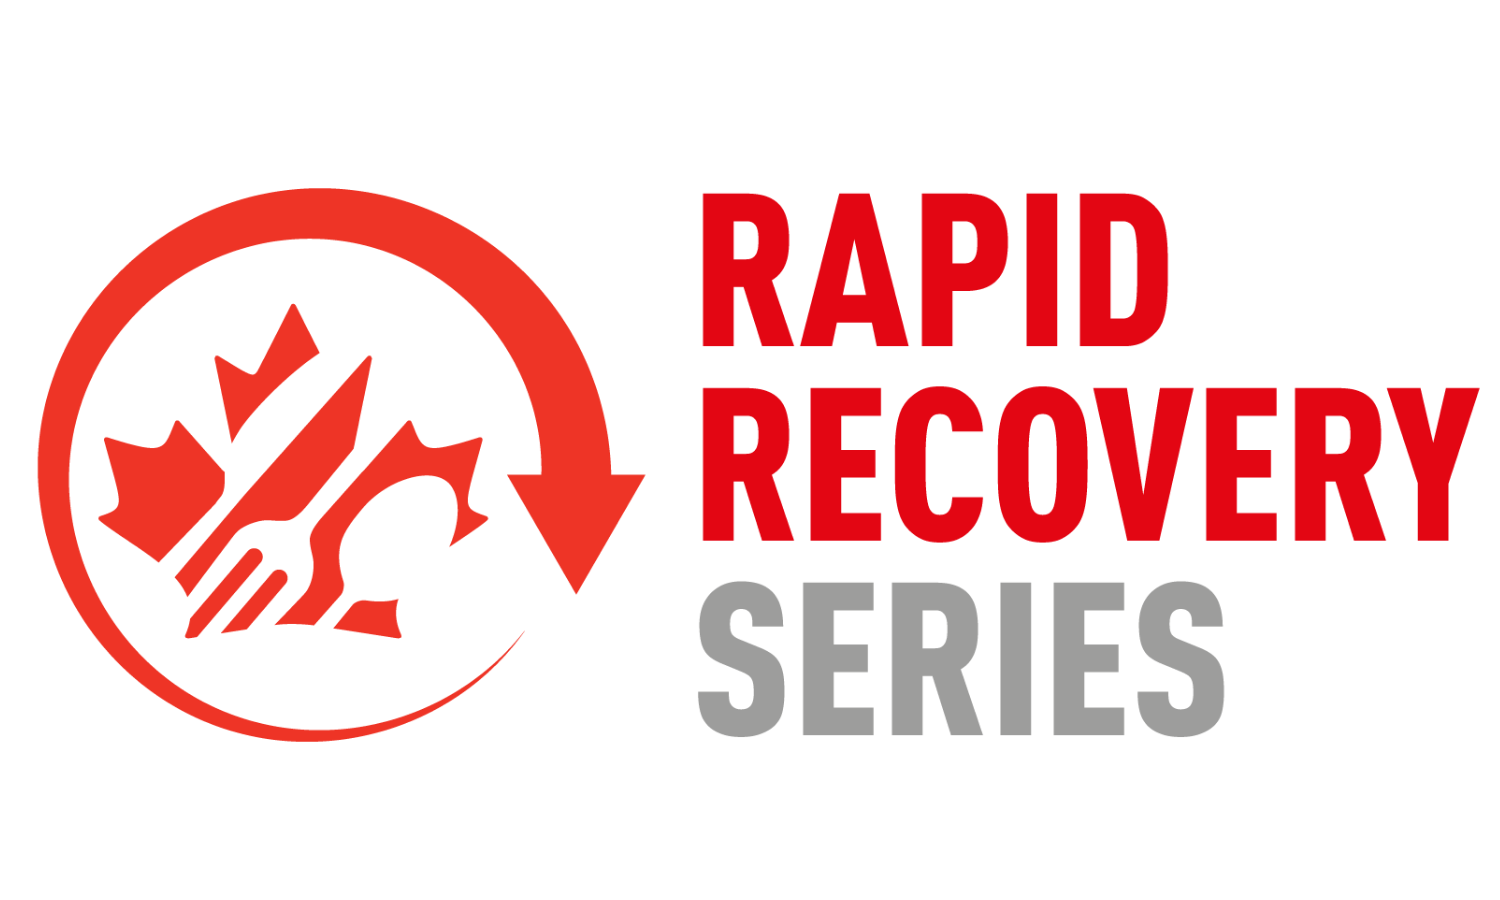 Rapid Recovery Series